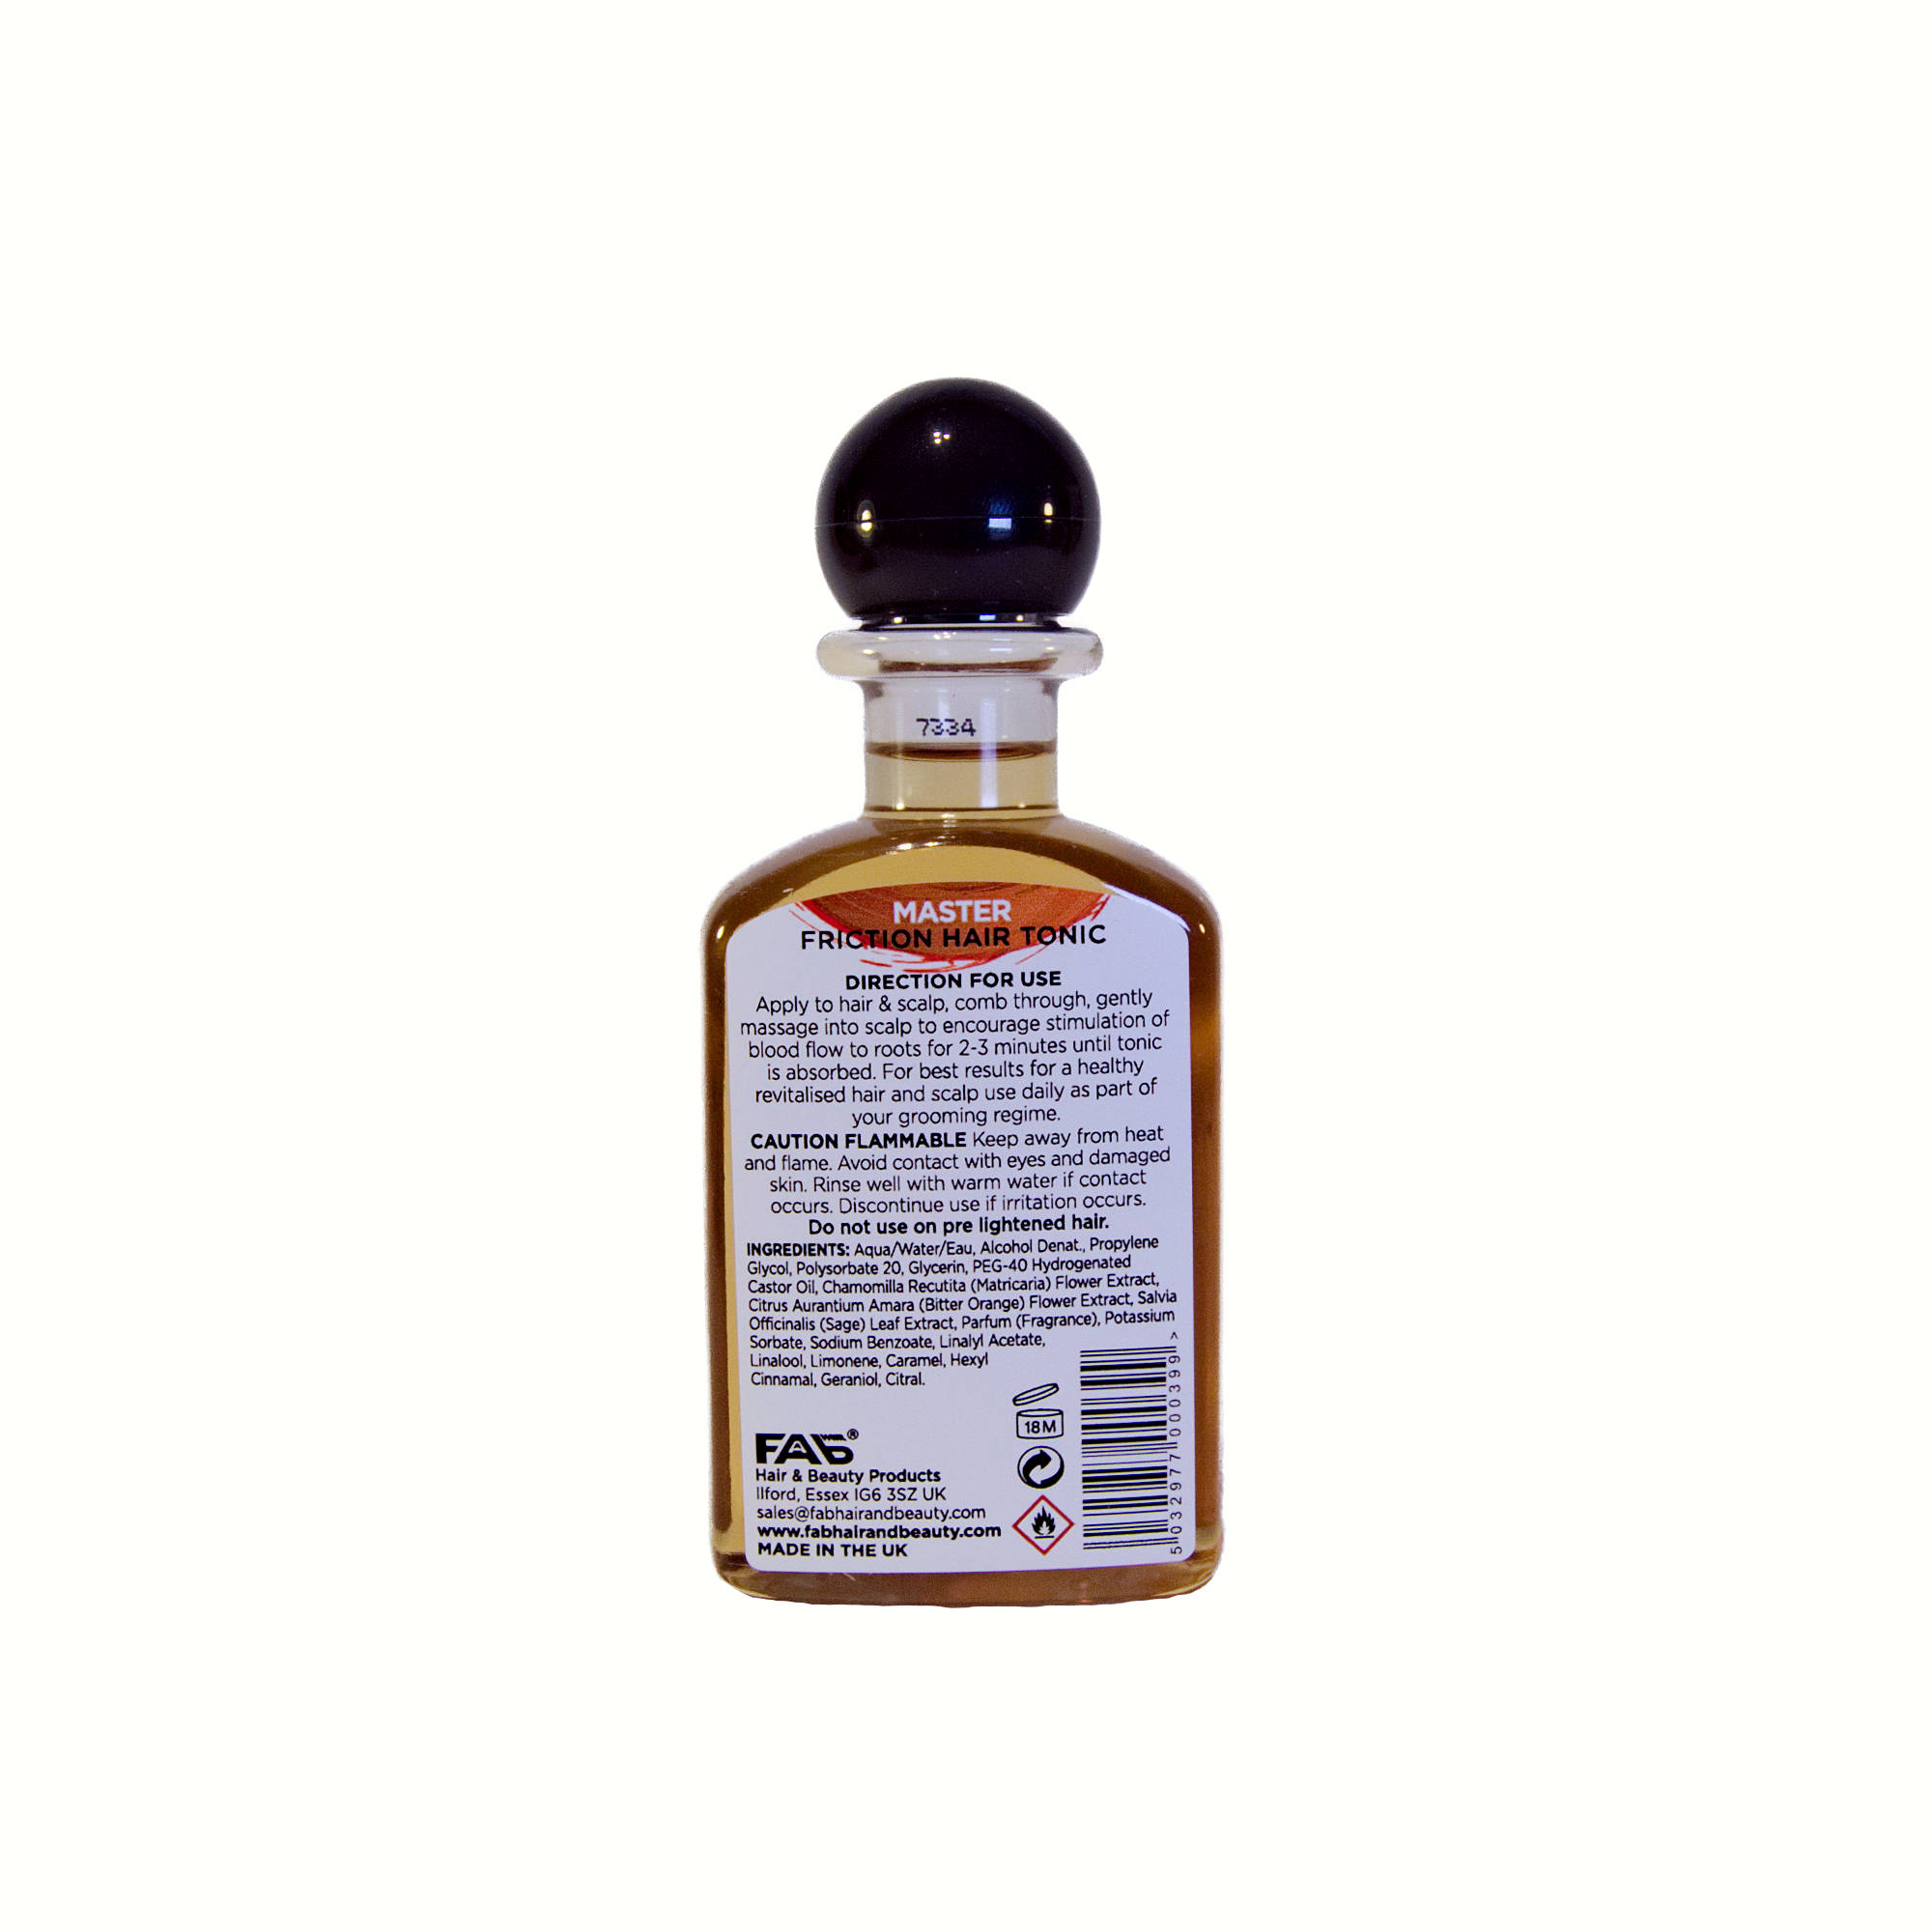 100ml bottle of Master flavoured FAB friction hair tonic (rear view)